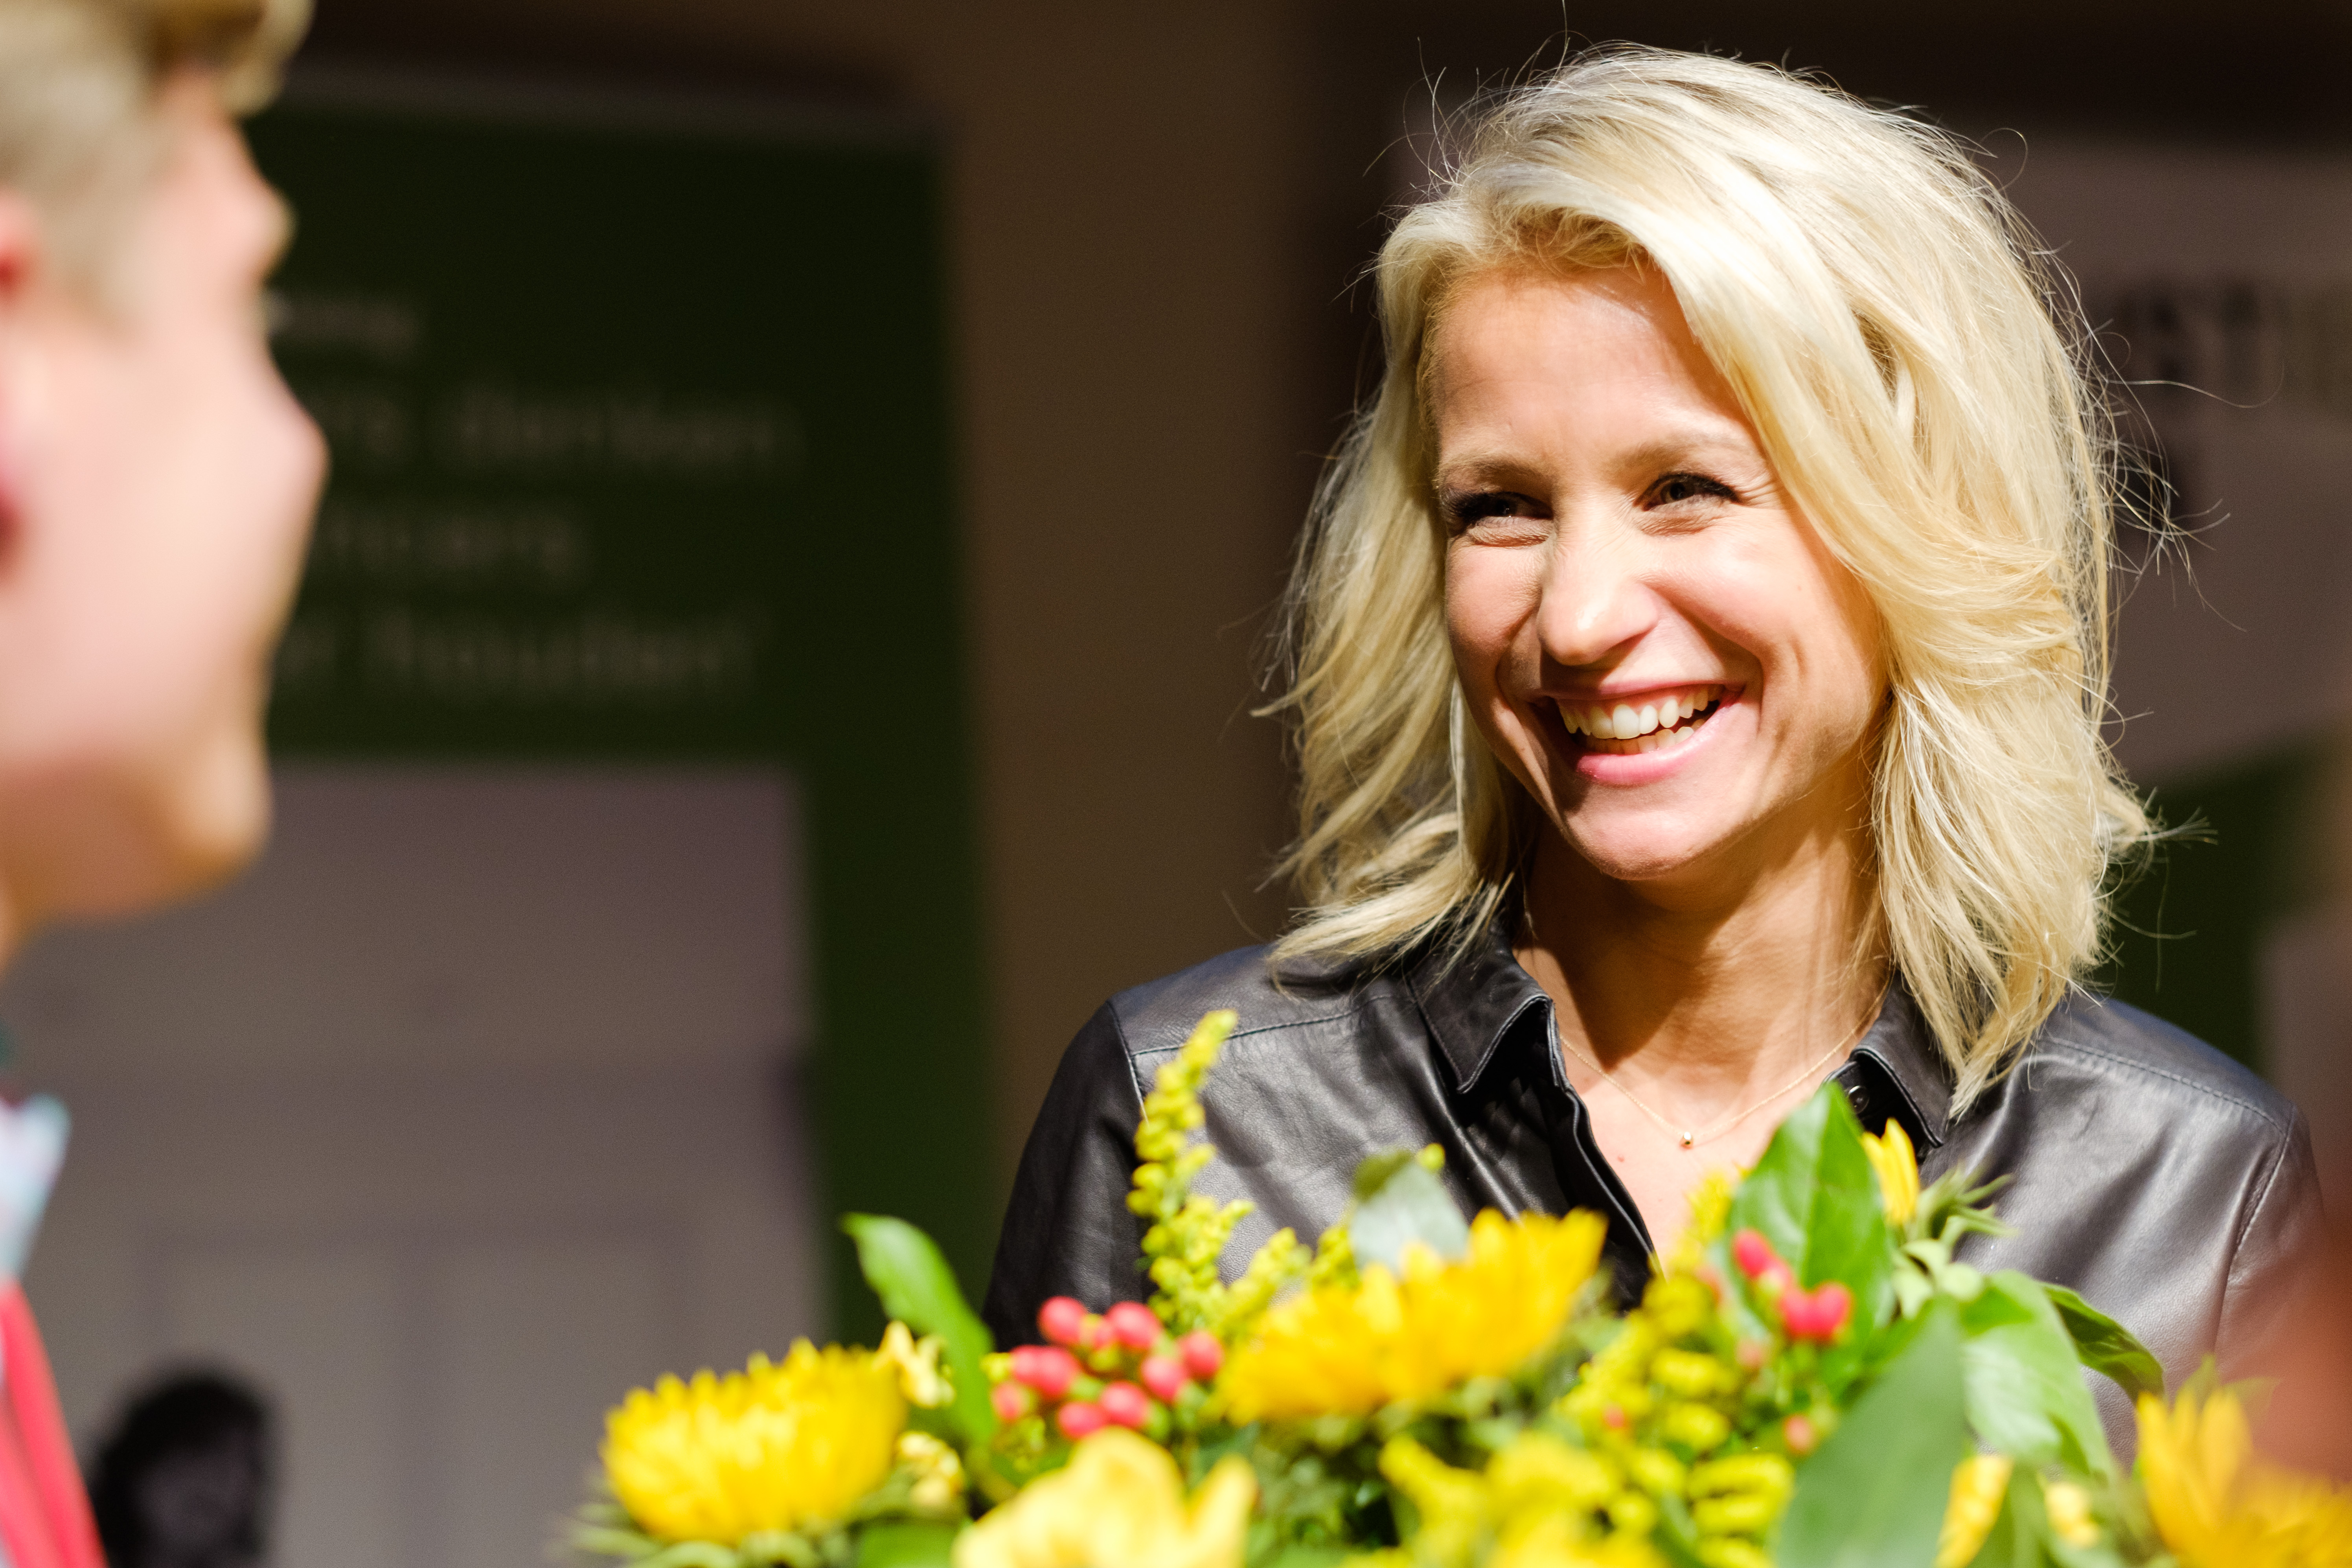 The 33-year old daughter of father (?) and mother(?) Dionne Stax in 2018 photo. Dionne Stax earned a  million dollar salary - leaving the net worth at 0.2 million in 2018